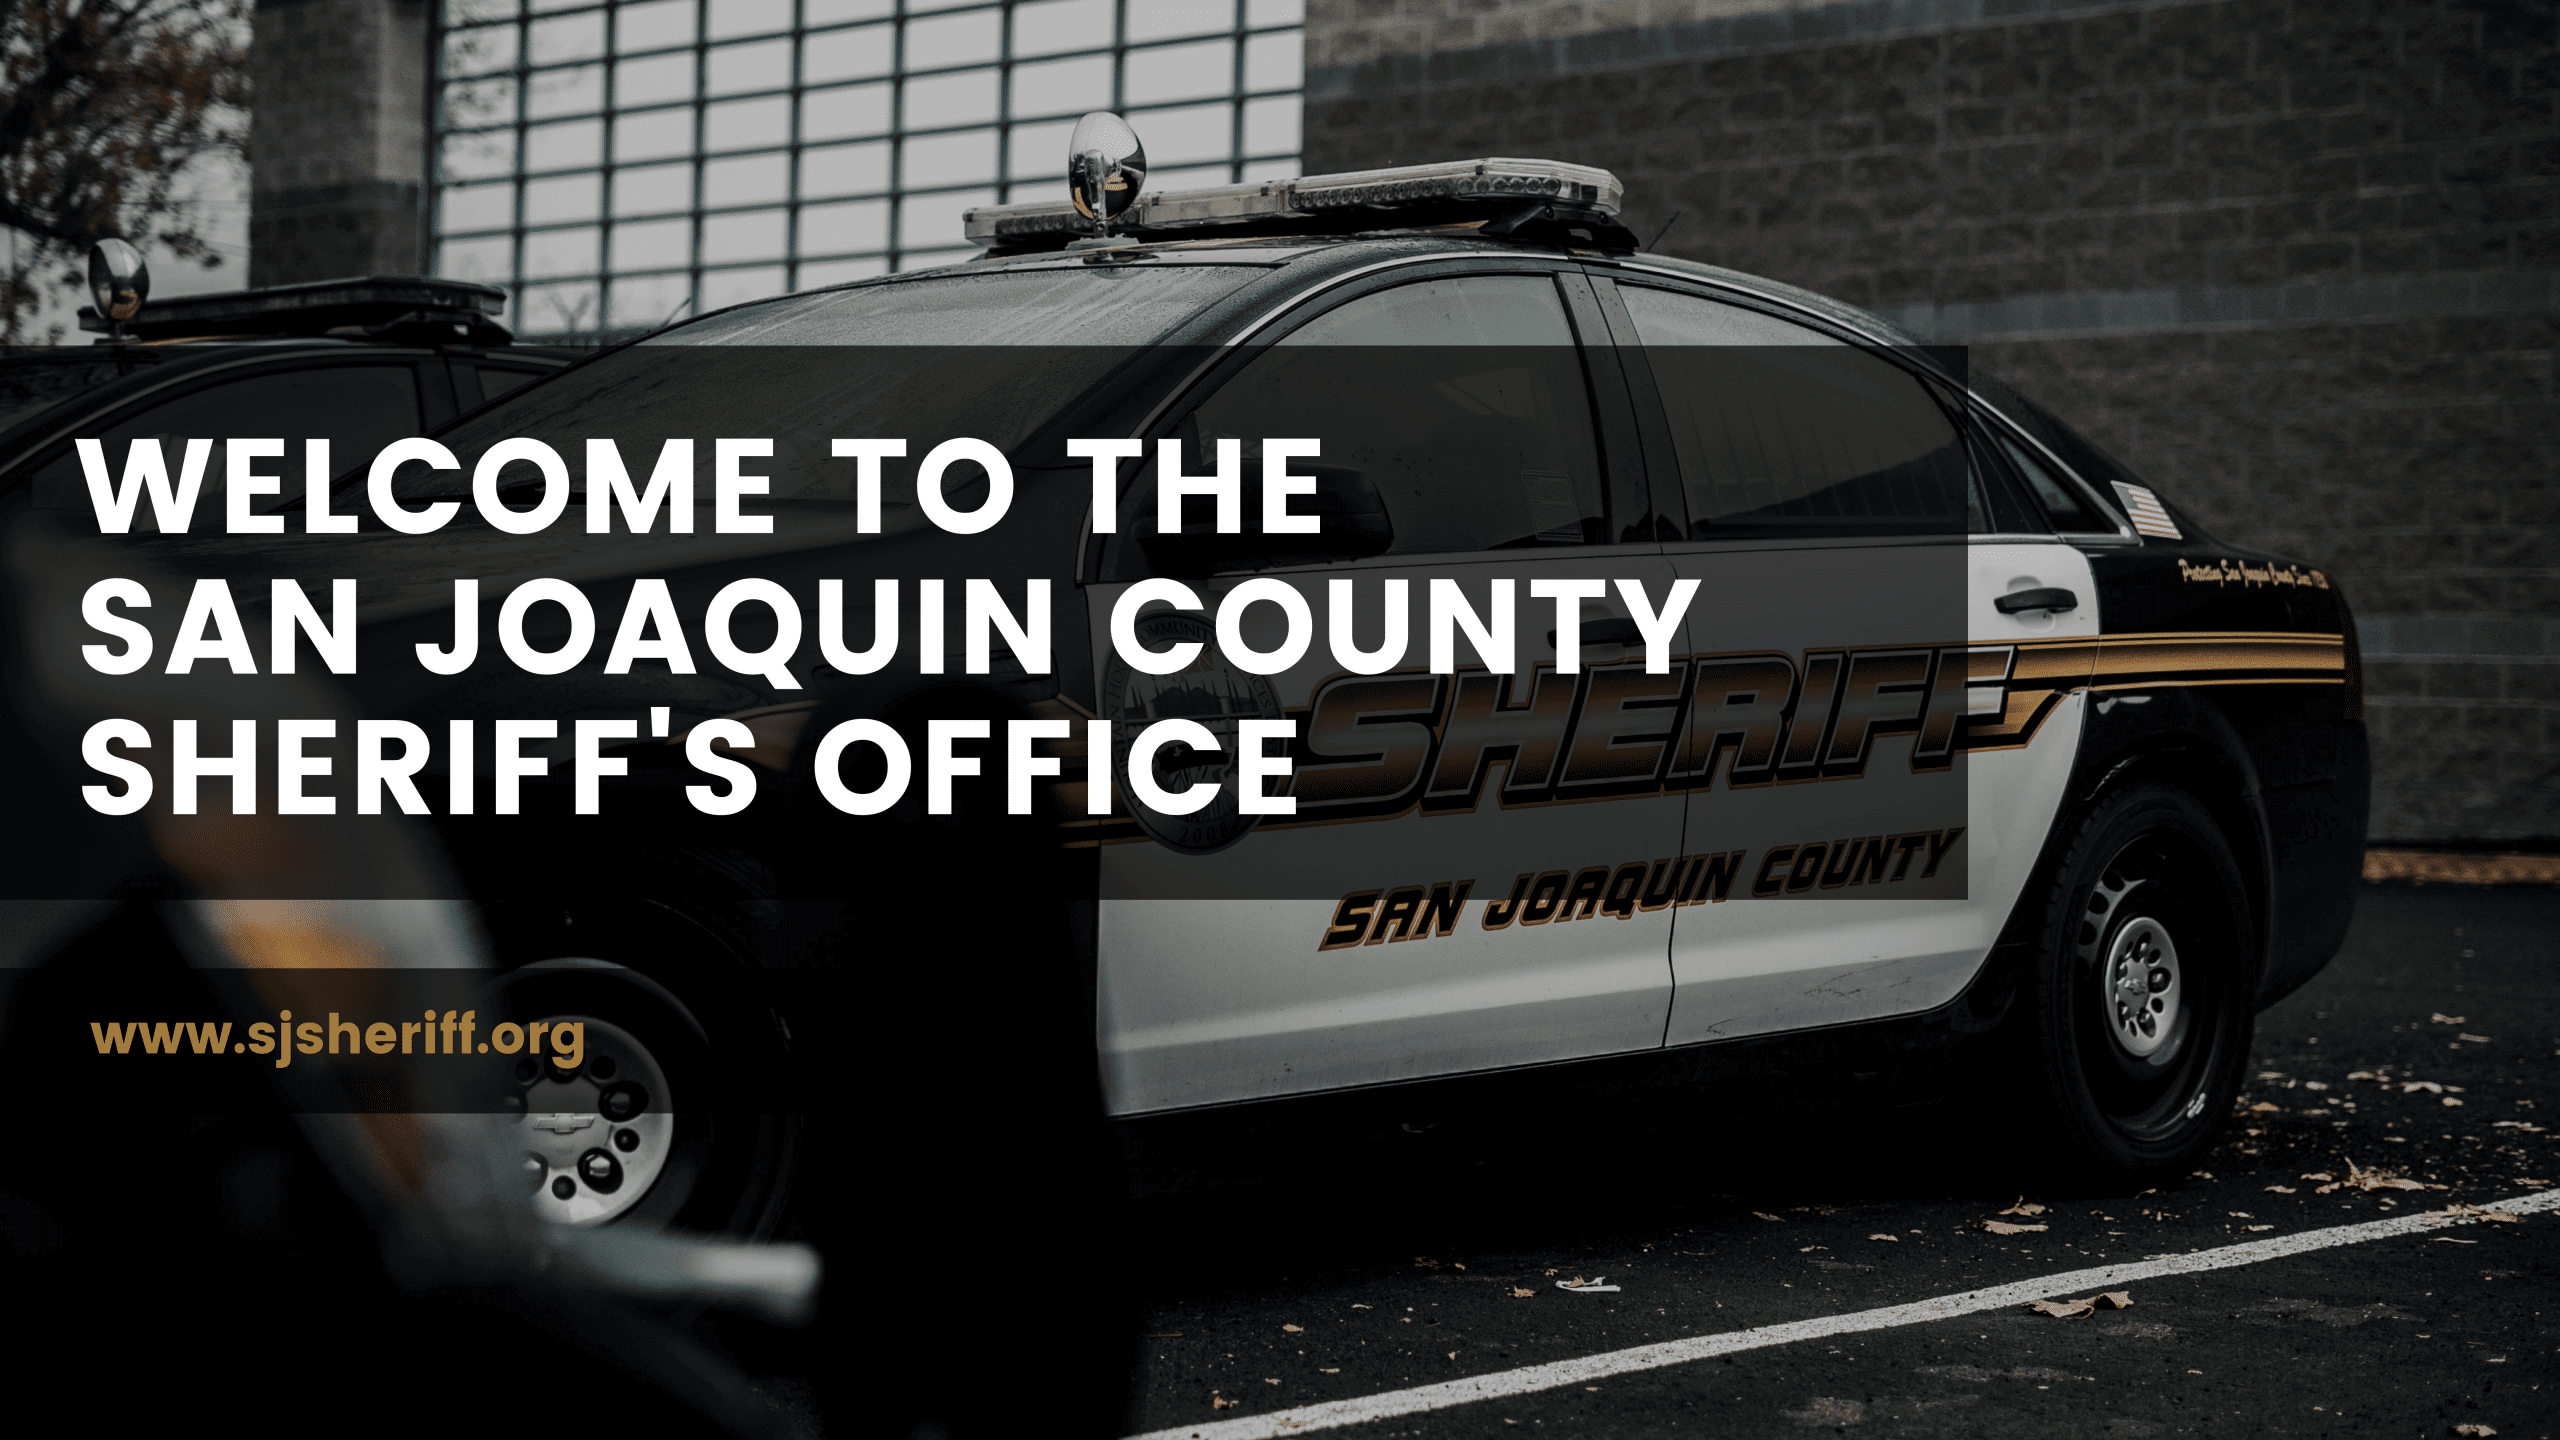 Welcome To The San Joaquin County Sheriff's Office